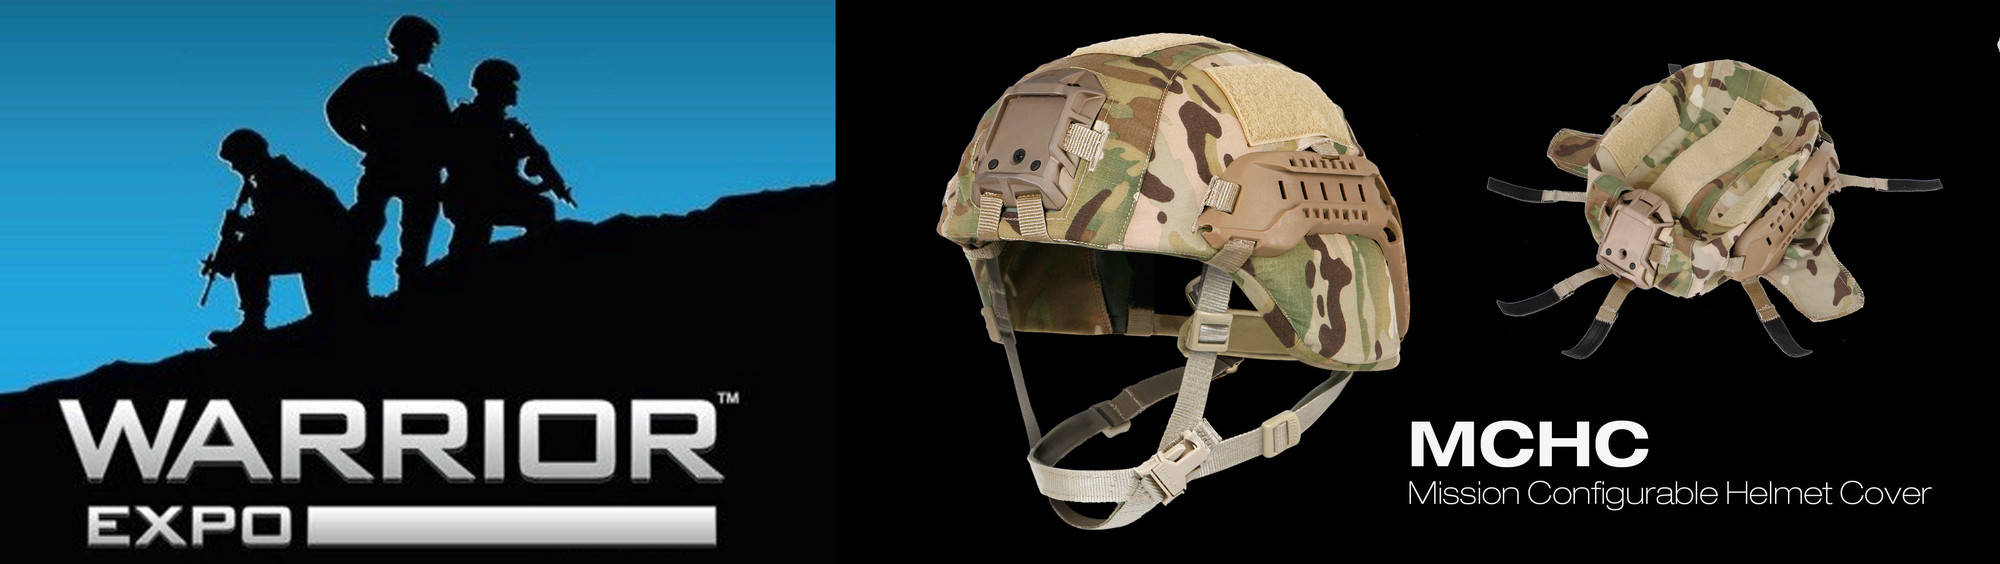 NEW OPS-CORE MISSION CONFIGURABLE HELMET COVER (MCHC) FEATURED AT WARRIOR EXPO EAST